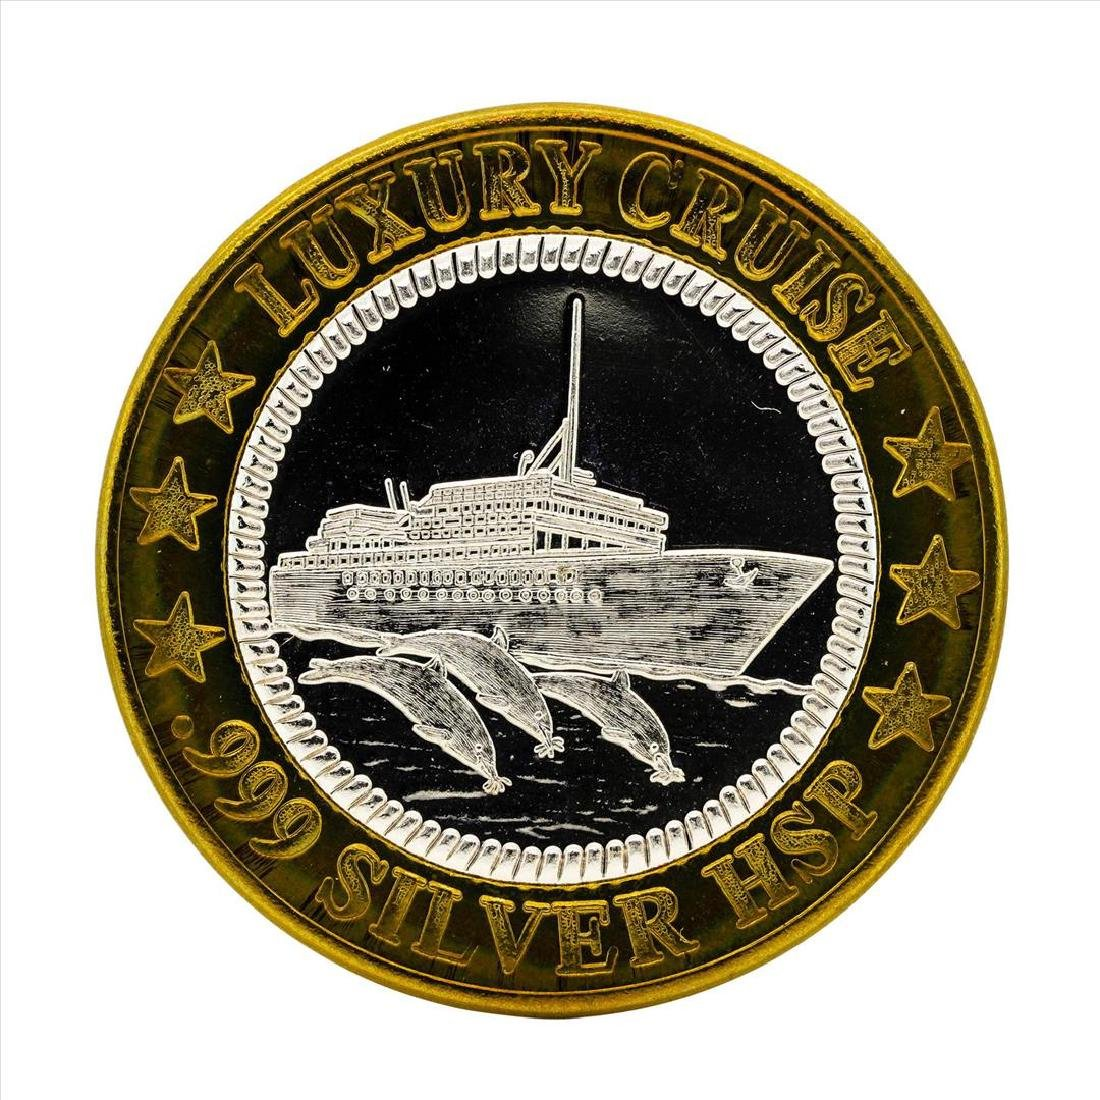 .999 Silver Luxury Cruise Lost Ship $10 Casino Gaming